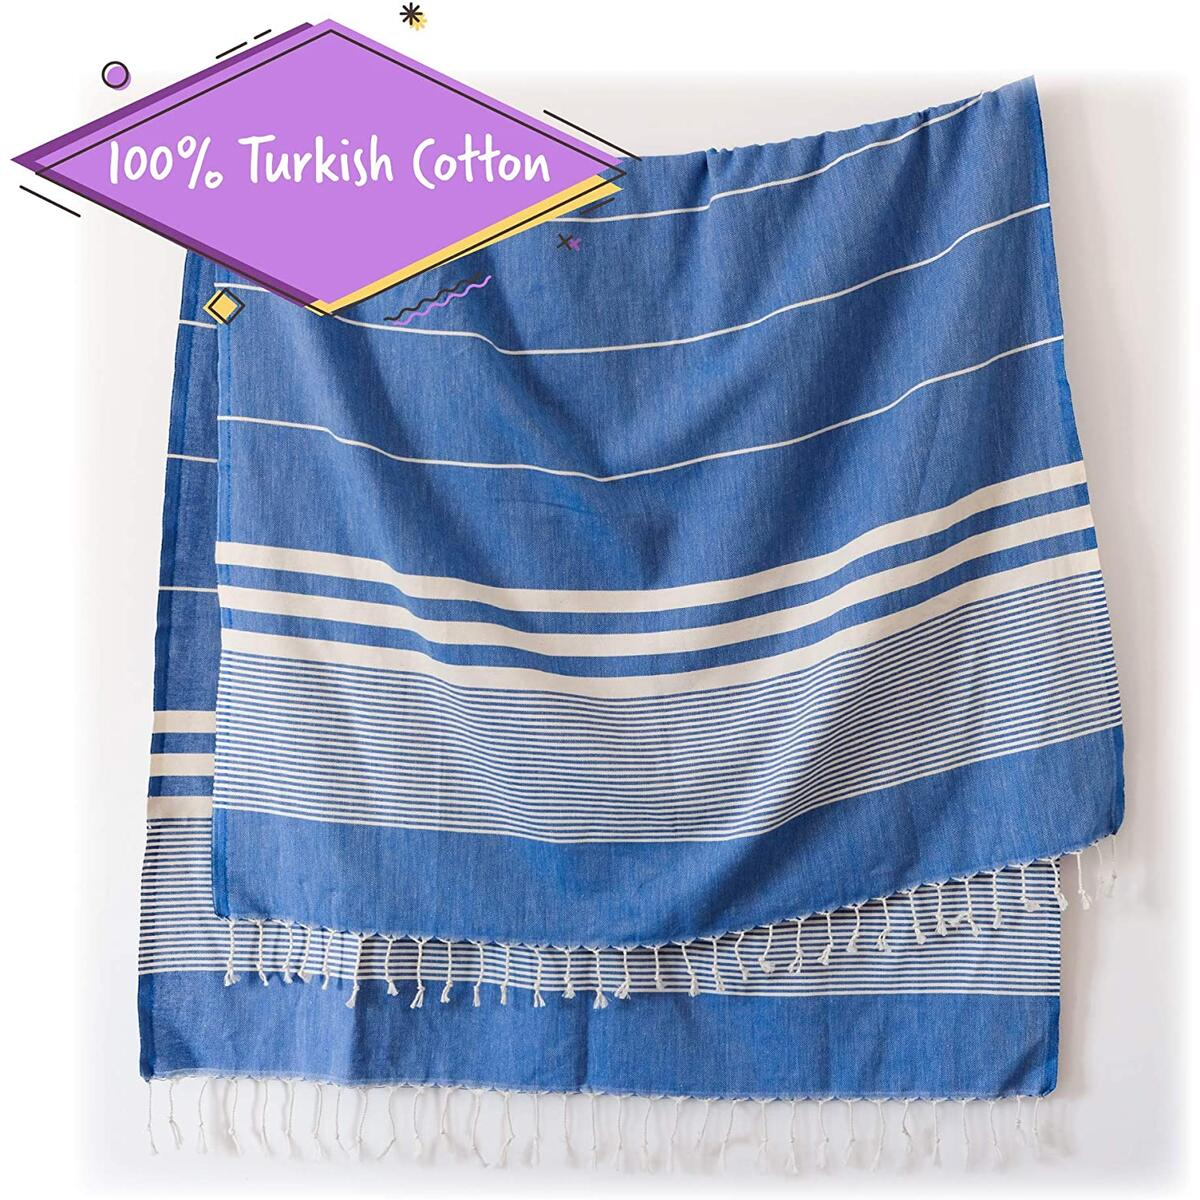 Turkish Towels by SunSpun Linens (Blue) - 39x71in No-Shrink Pre-Washed Pestemal Cotton Oversized Turkish Beach Towel and Blanket, Turkish Bath Towels, Turkish Beach Towels, Bath Towel, Bathroom Towels